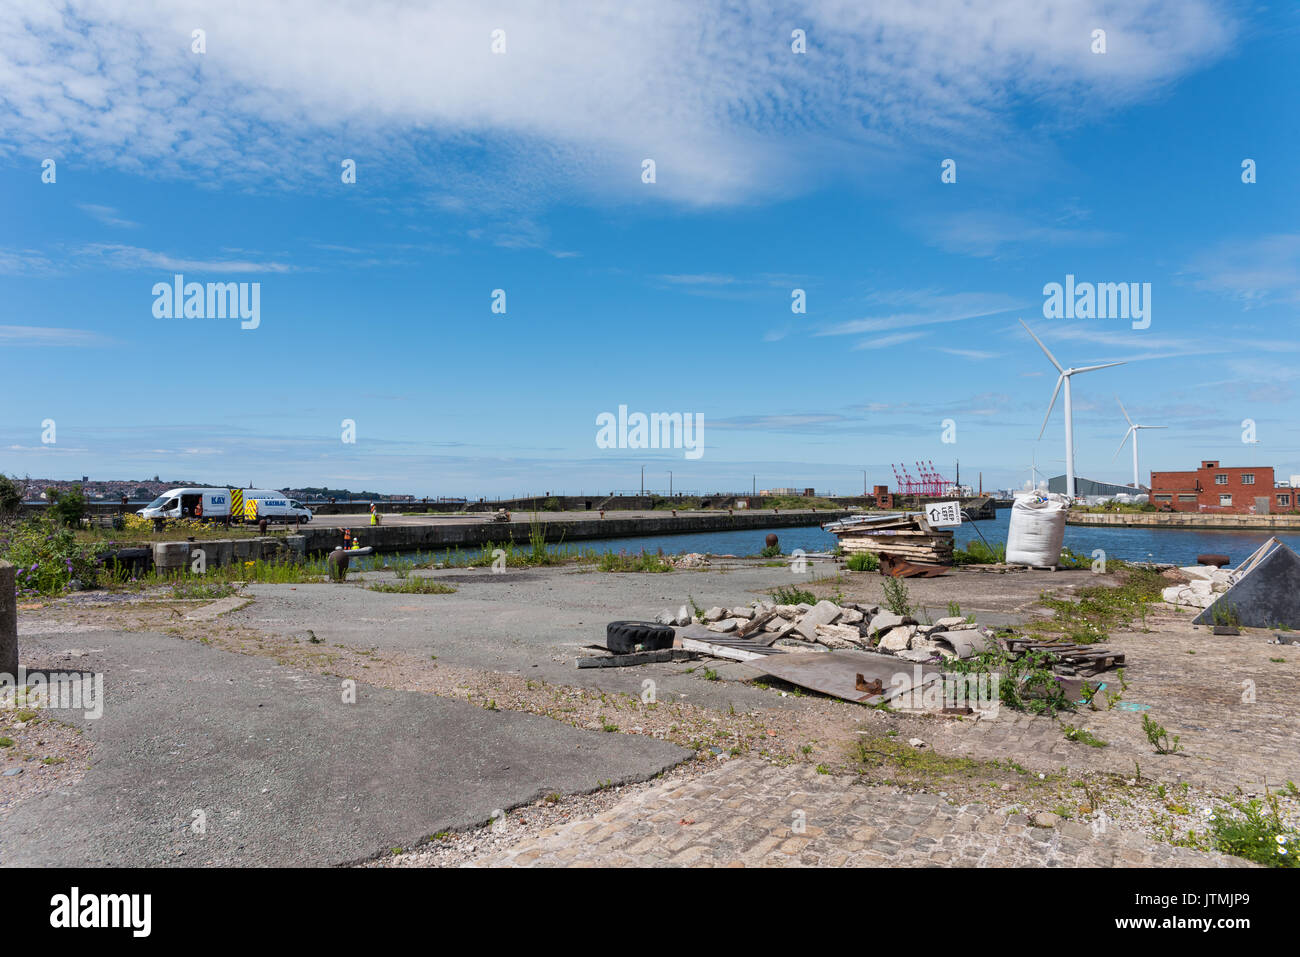 Bramley Moore Dock, Liverpool. Location of new Everton FC stadium which will be moving from their Goodison Park location - Stock Image